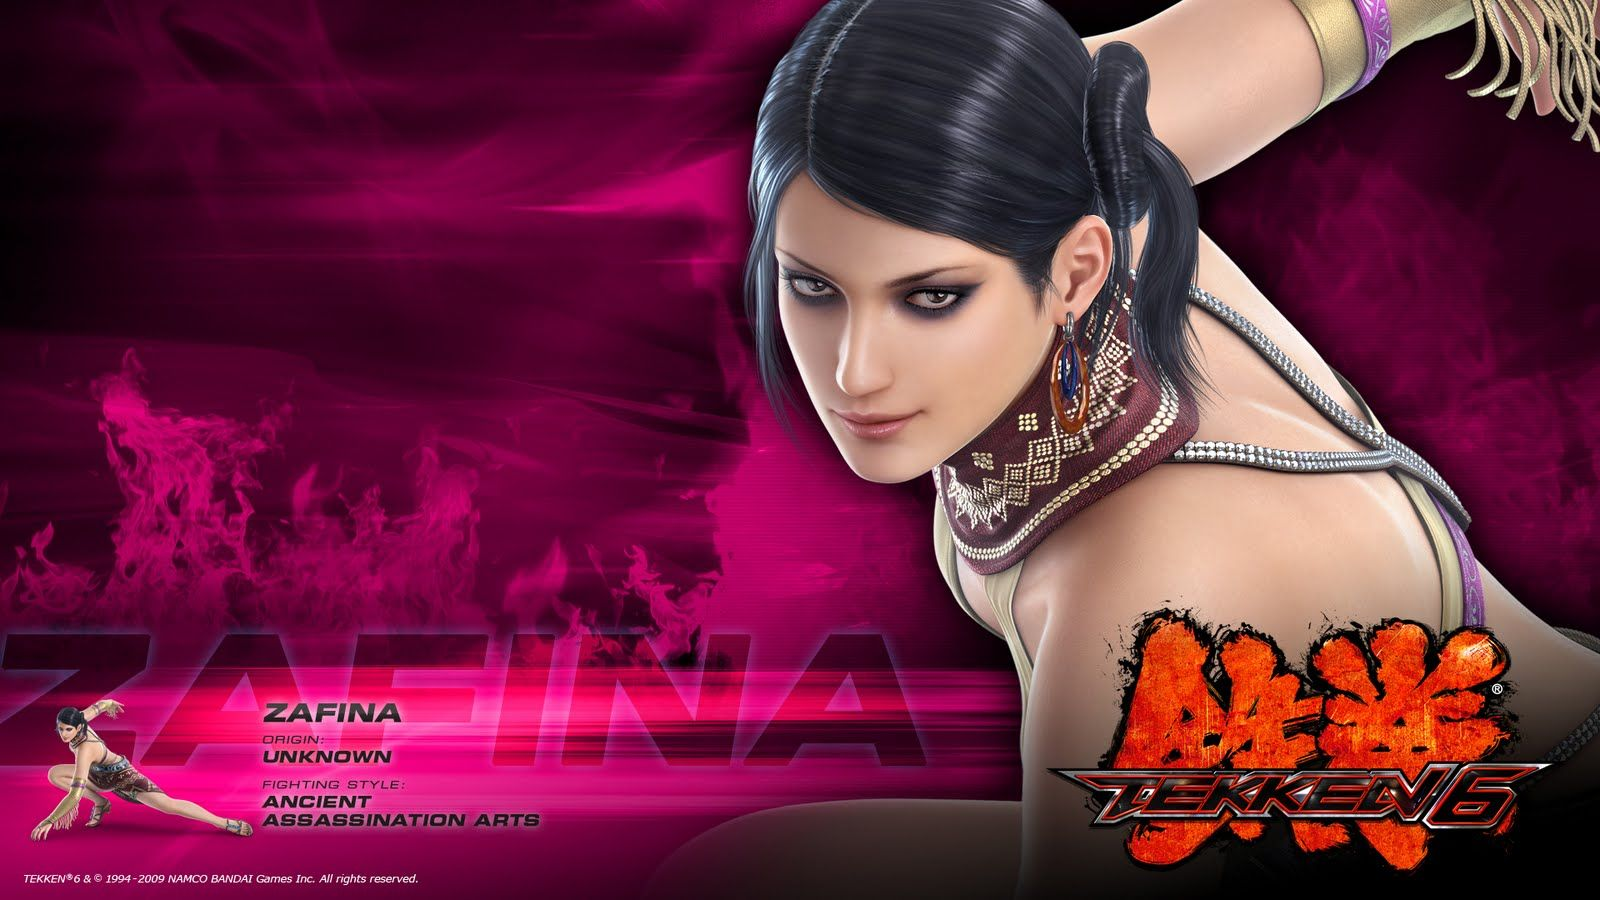 Tekken Zafina By Naughtyboy On Deviantart Wallpaper Art